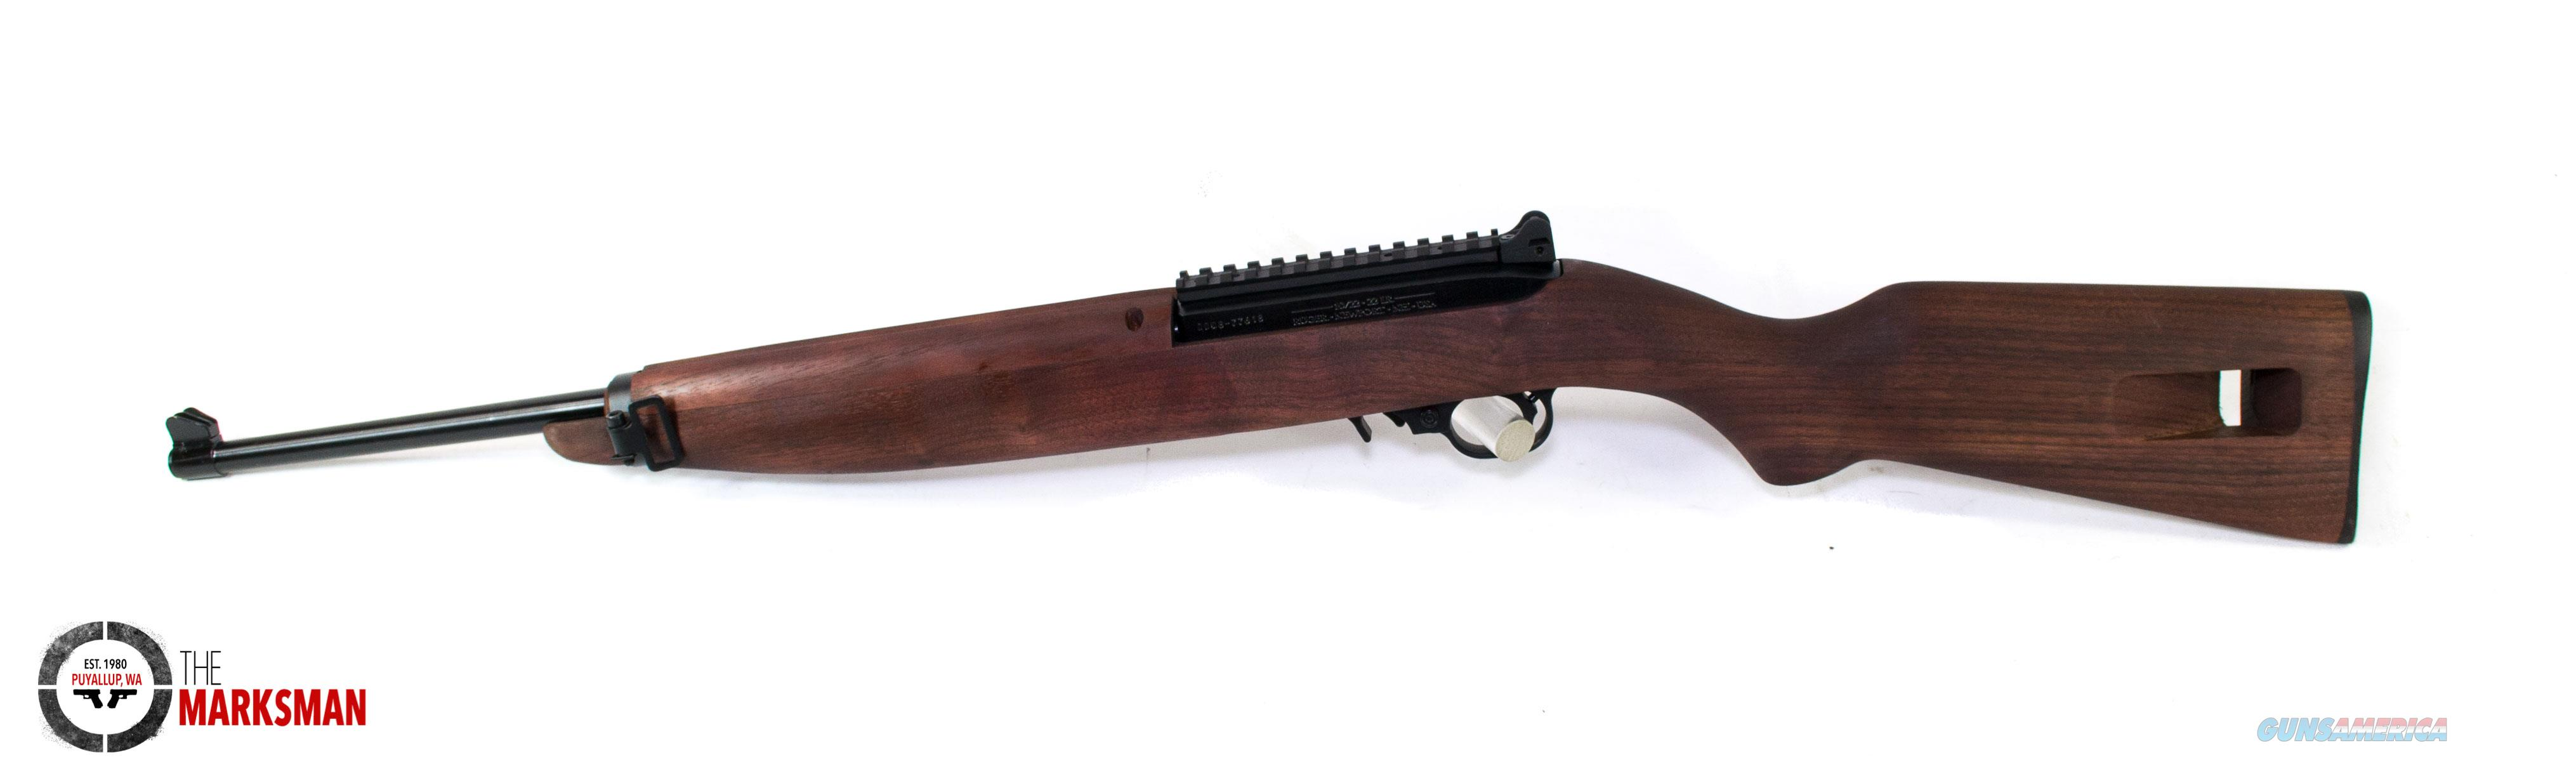 Ruger 10/22 M1 Carbine, .22 lr, Talo Exclusive   Guns > Rifles > Ruger Rifles > 10-22